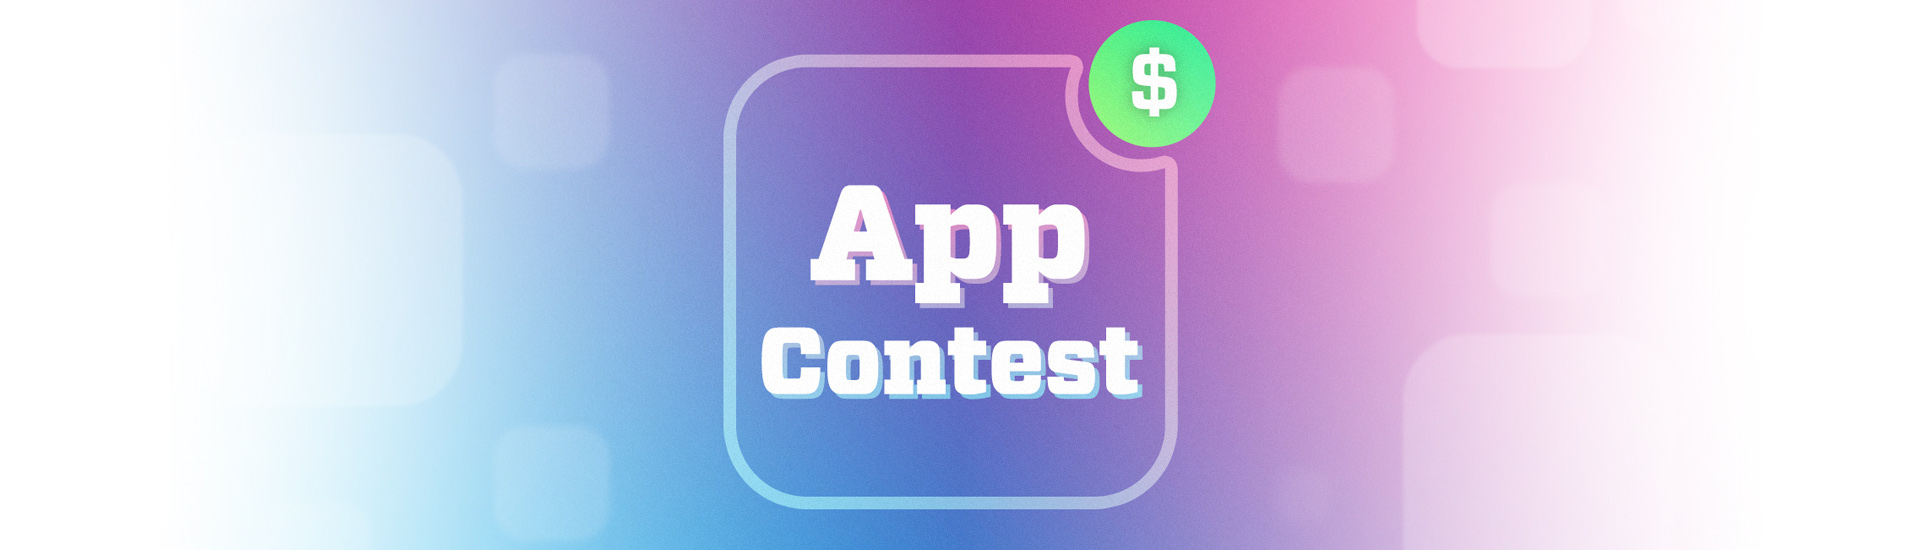 app contest 2018 graphic